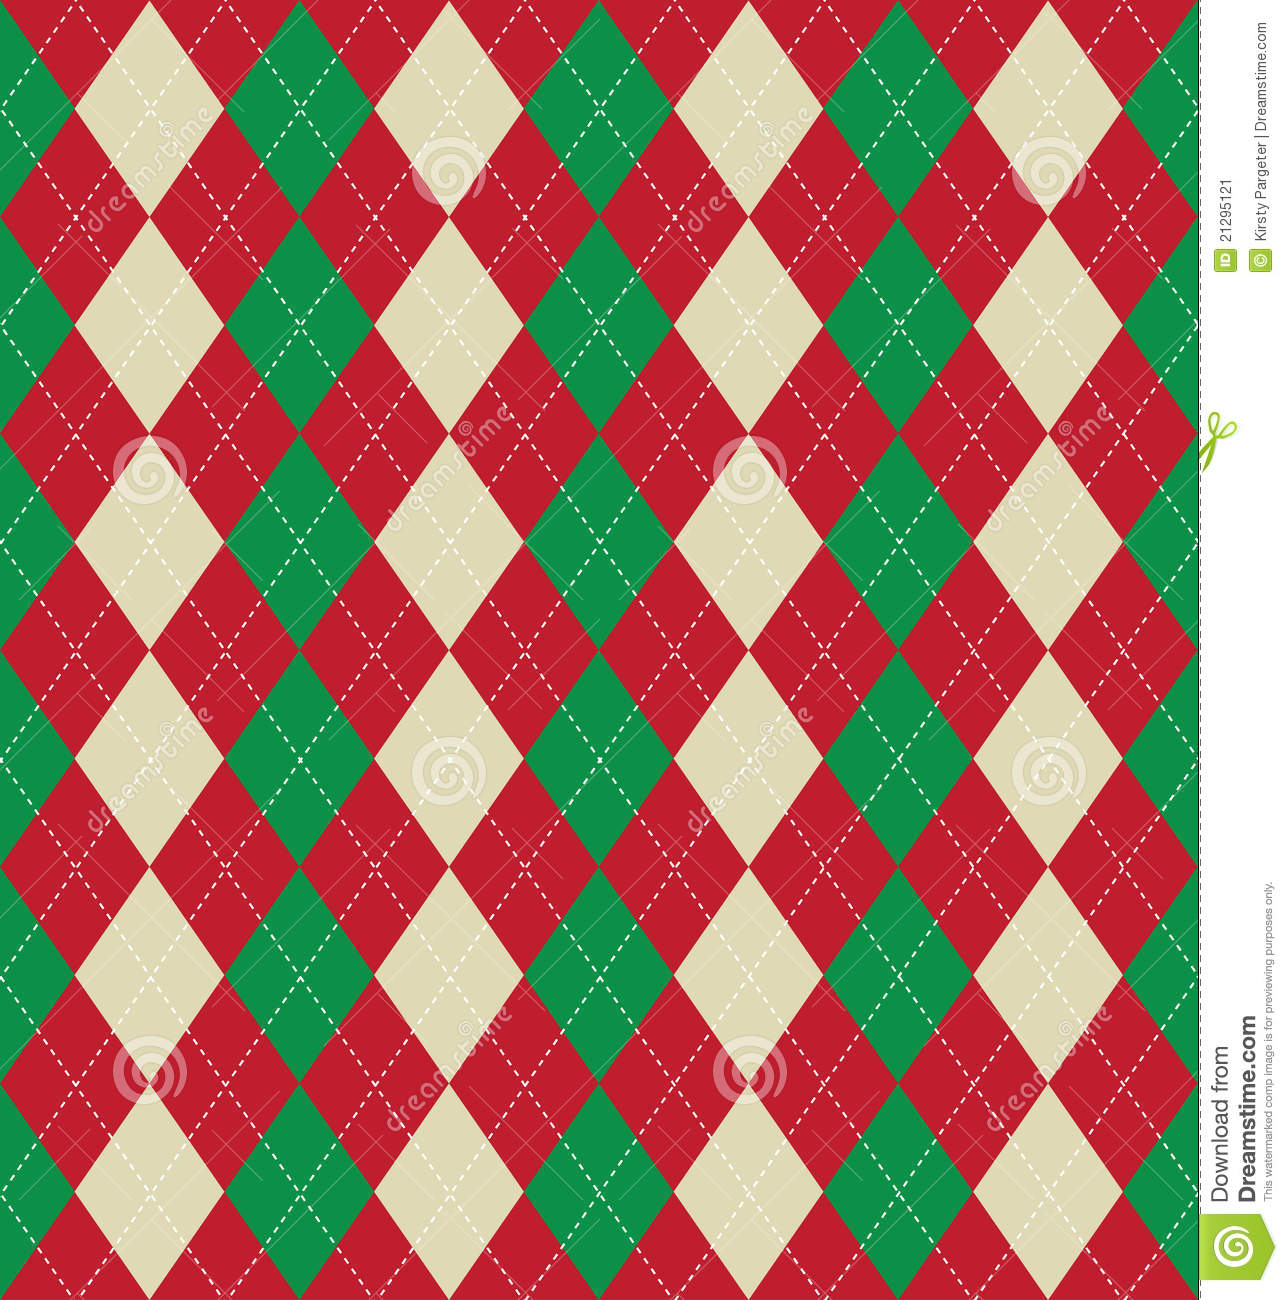 ... tiled background of an argyle style pattern using Christmas colours